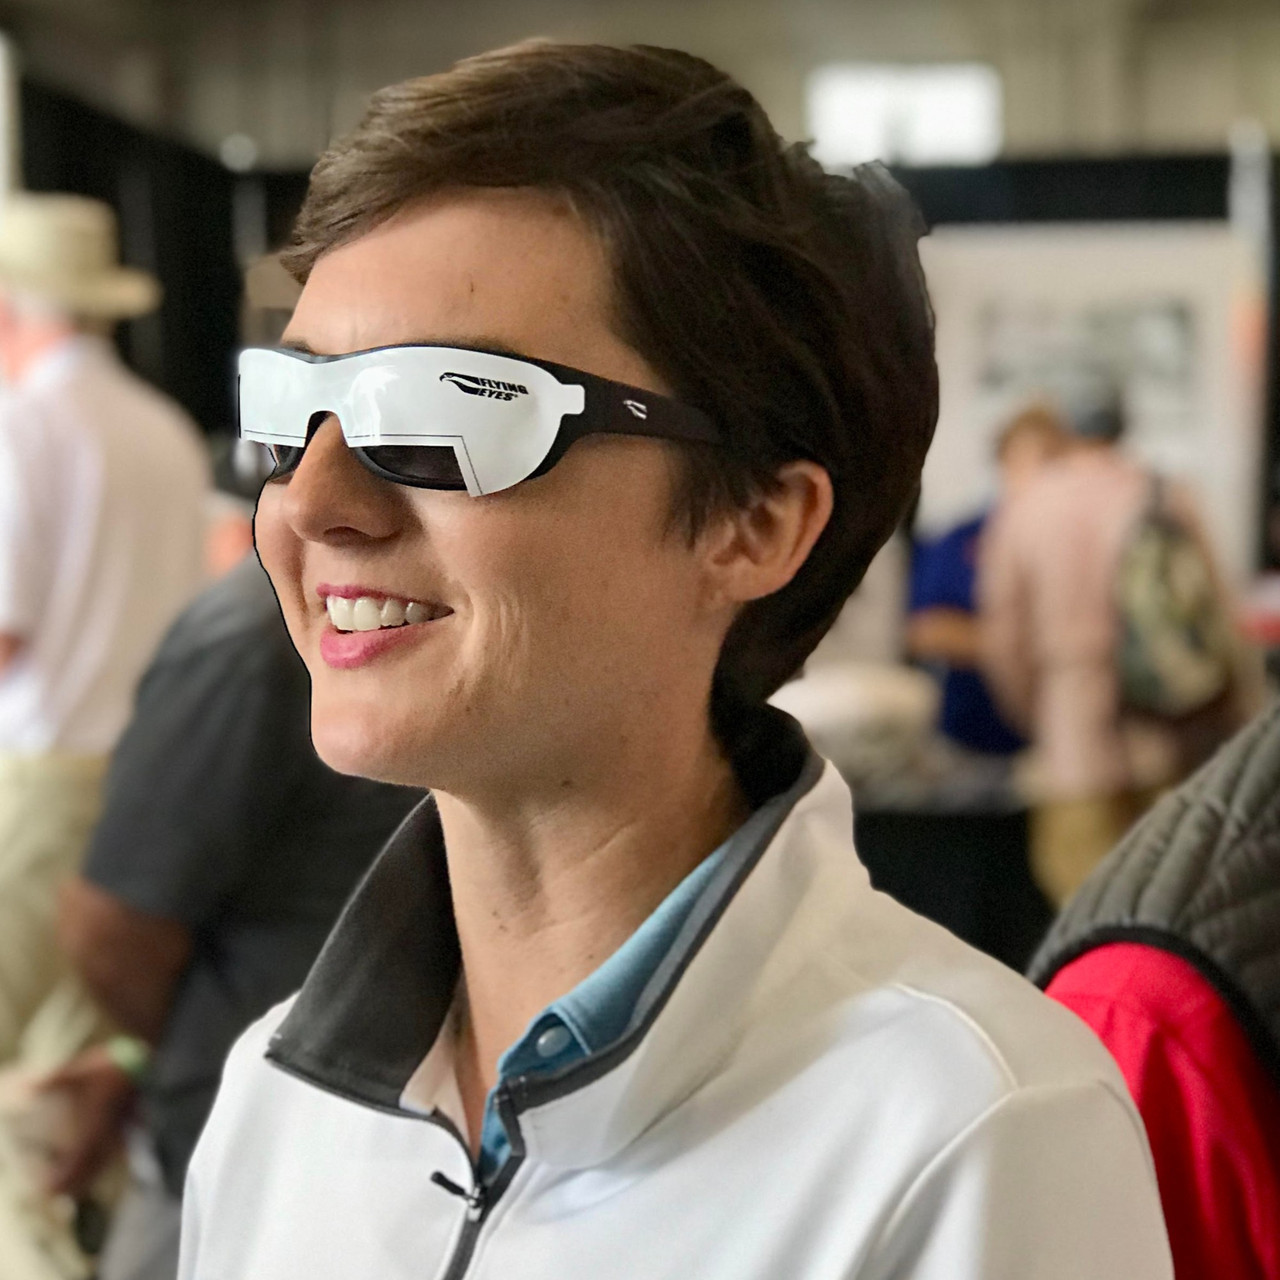 Smiling person wears static cling view limiters for instrument training on their sunglasses.